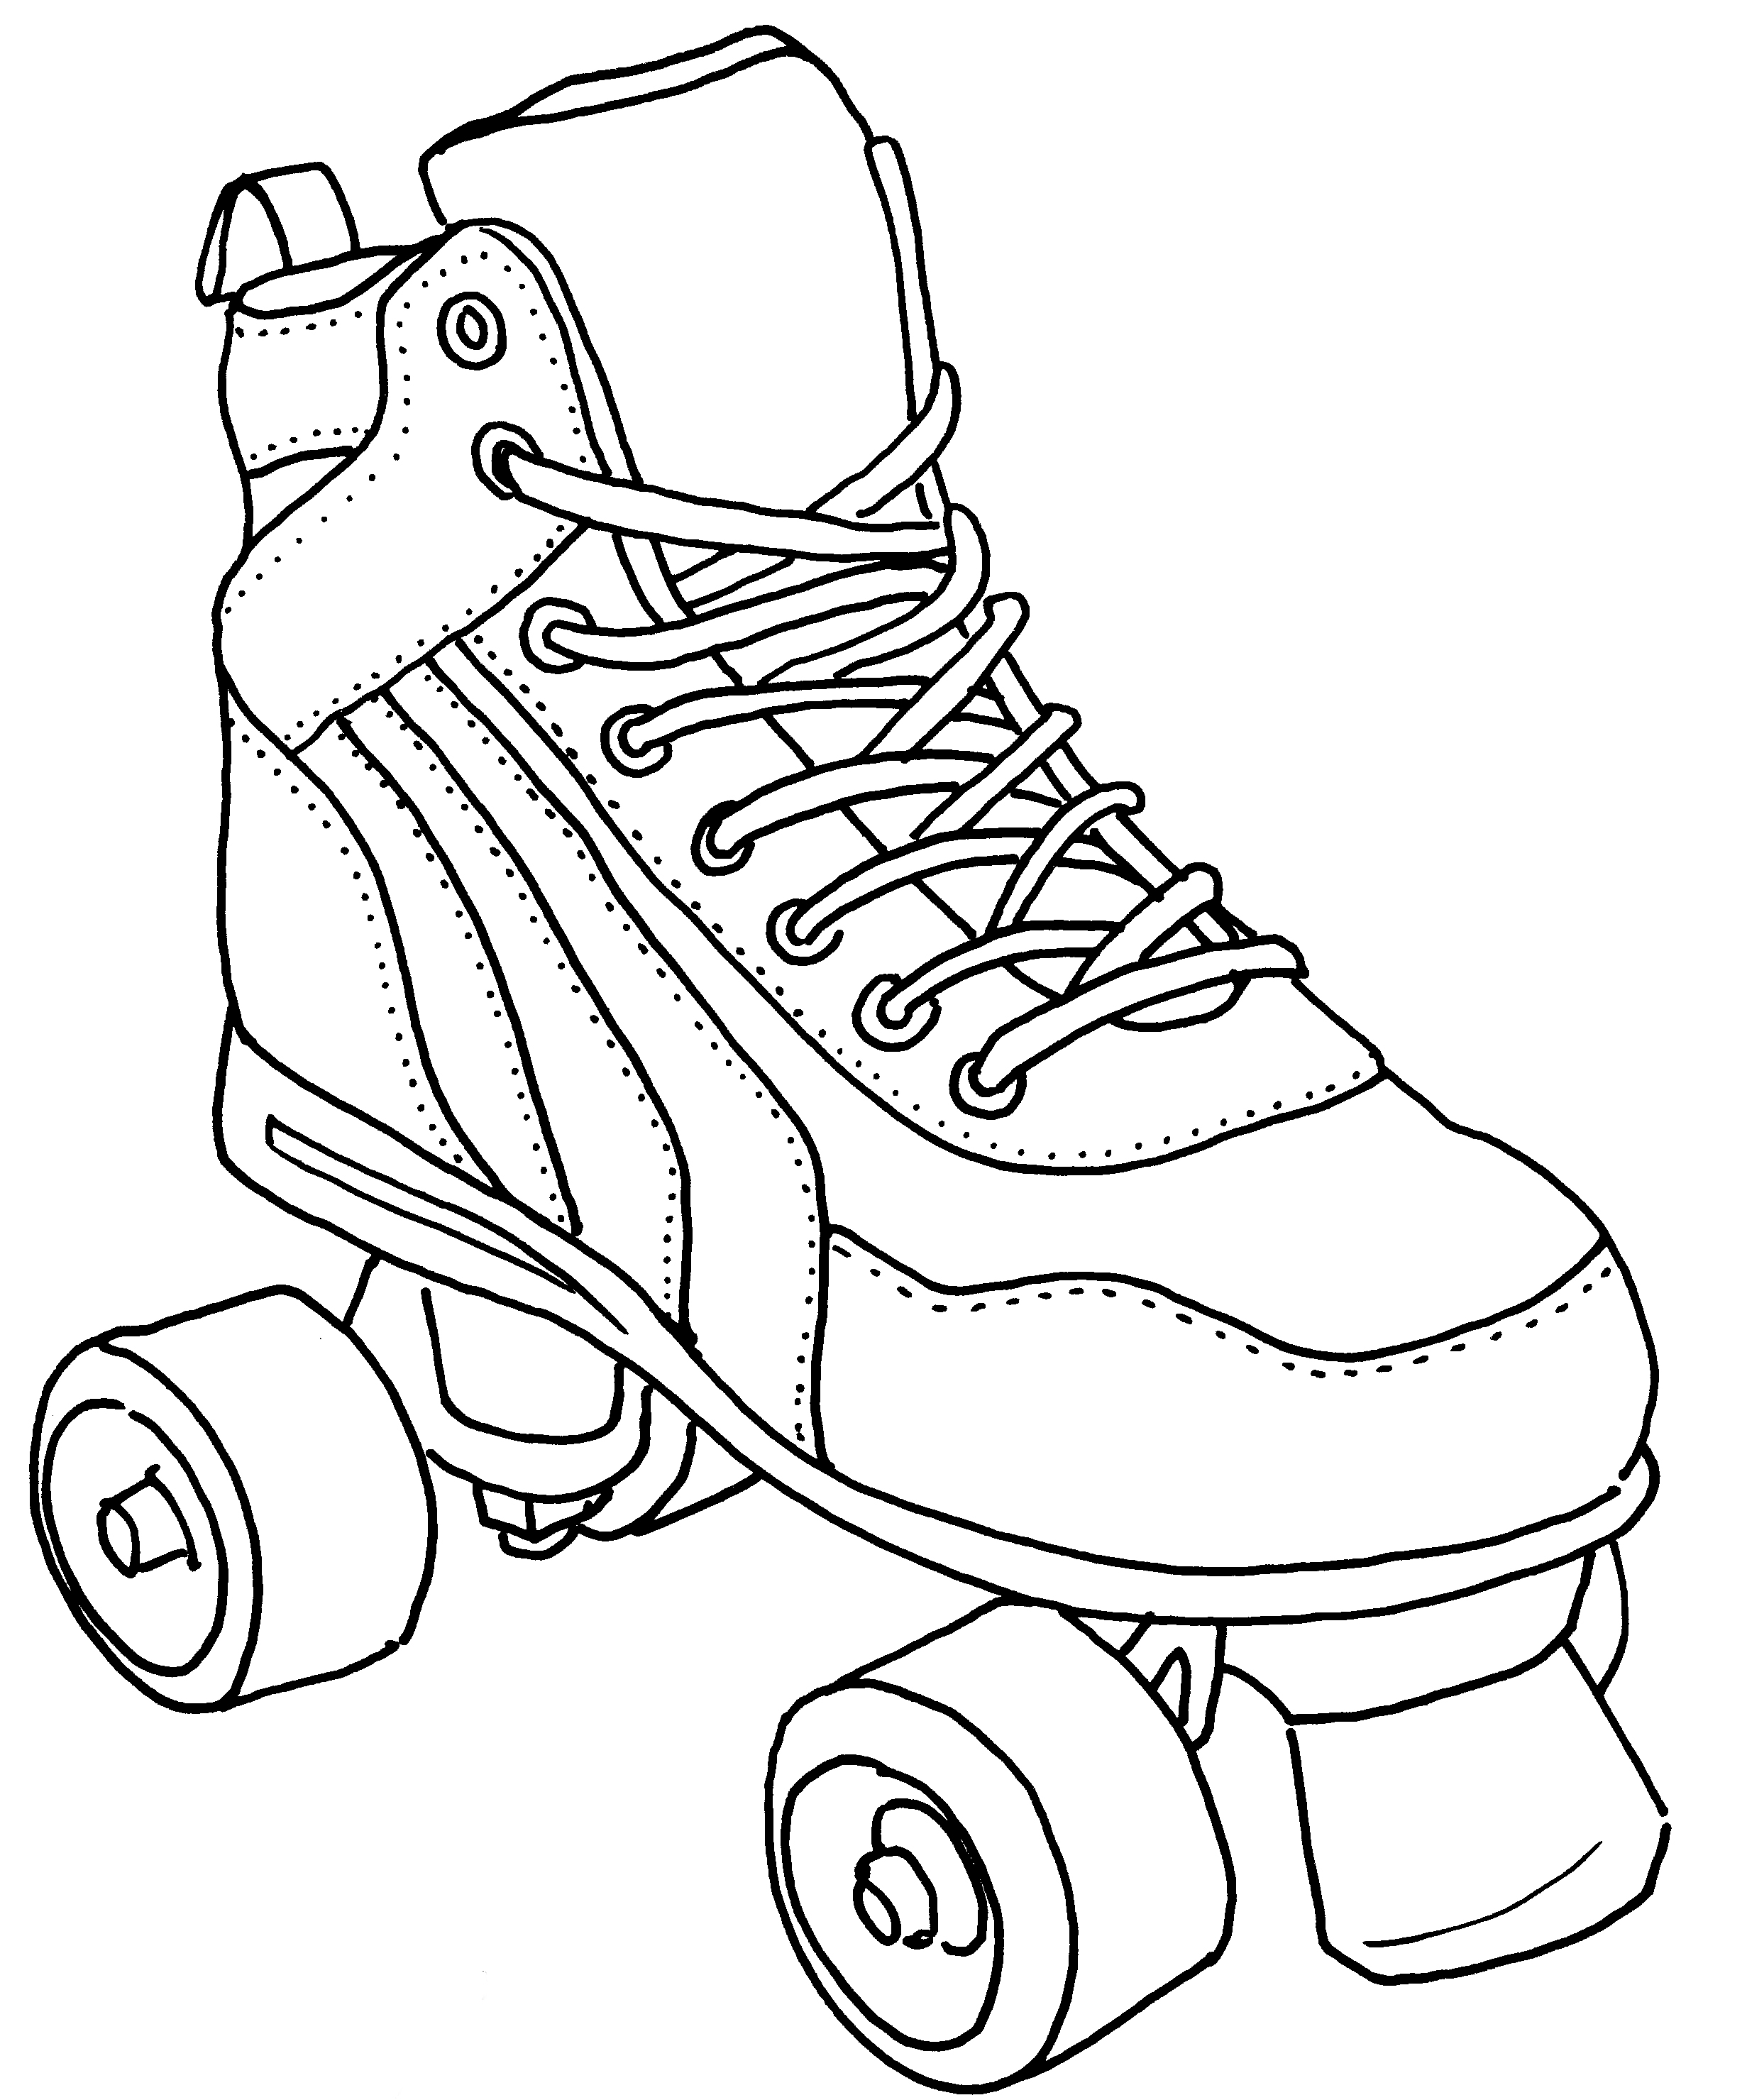 Free Roller Skate Coloring Pages - Fun Color Page